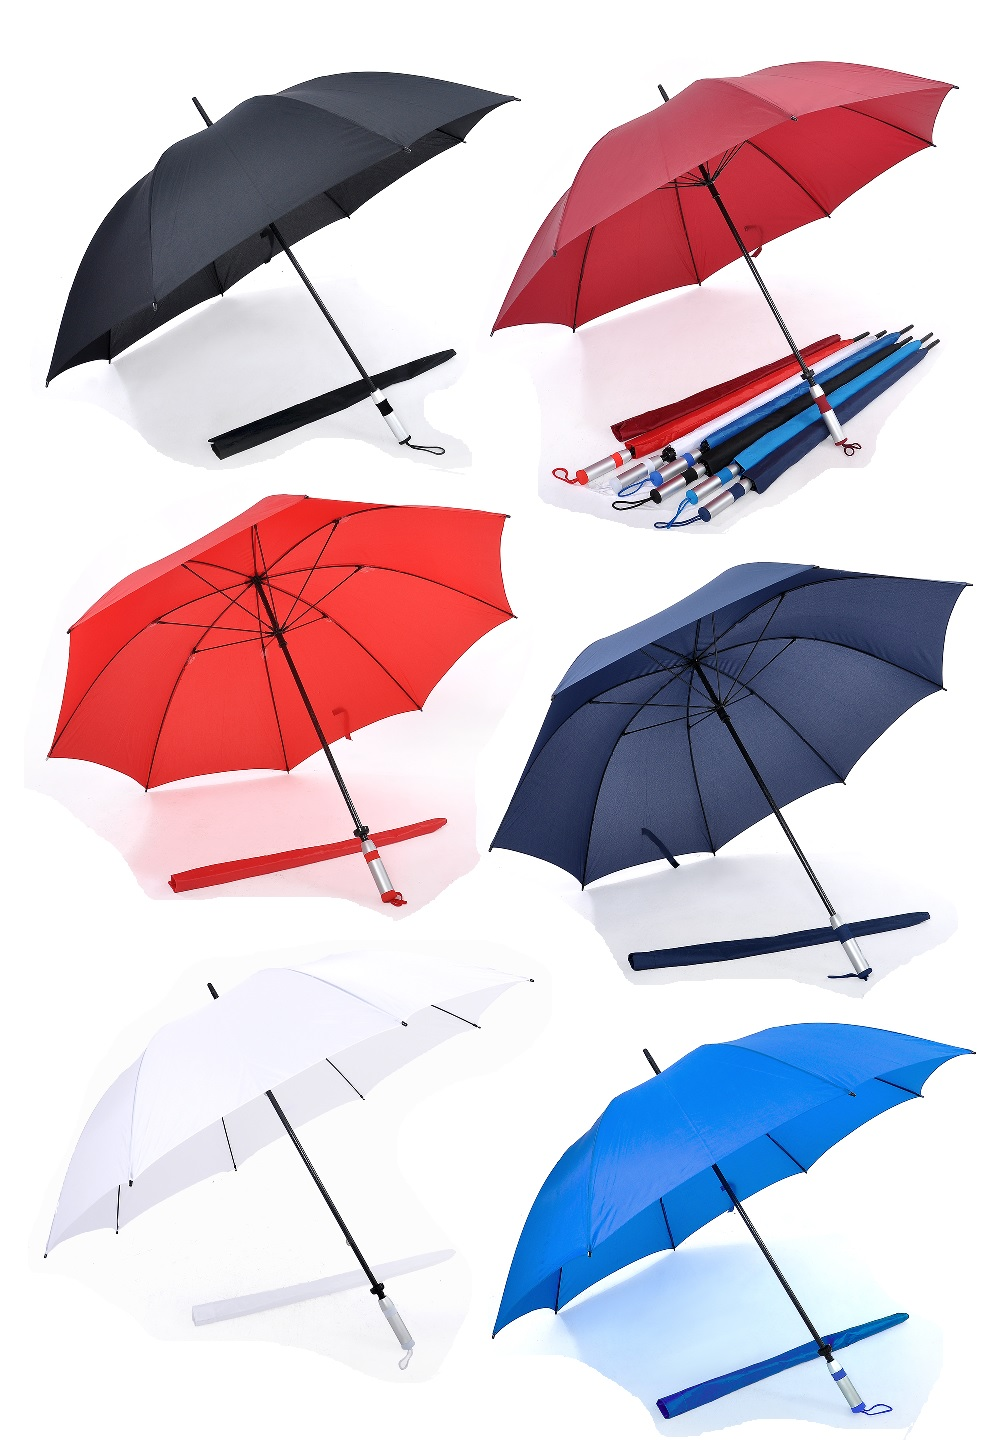 30inch Golf Umbrella with string on the handle